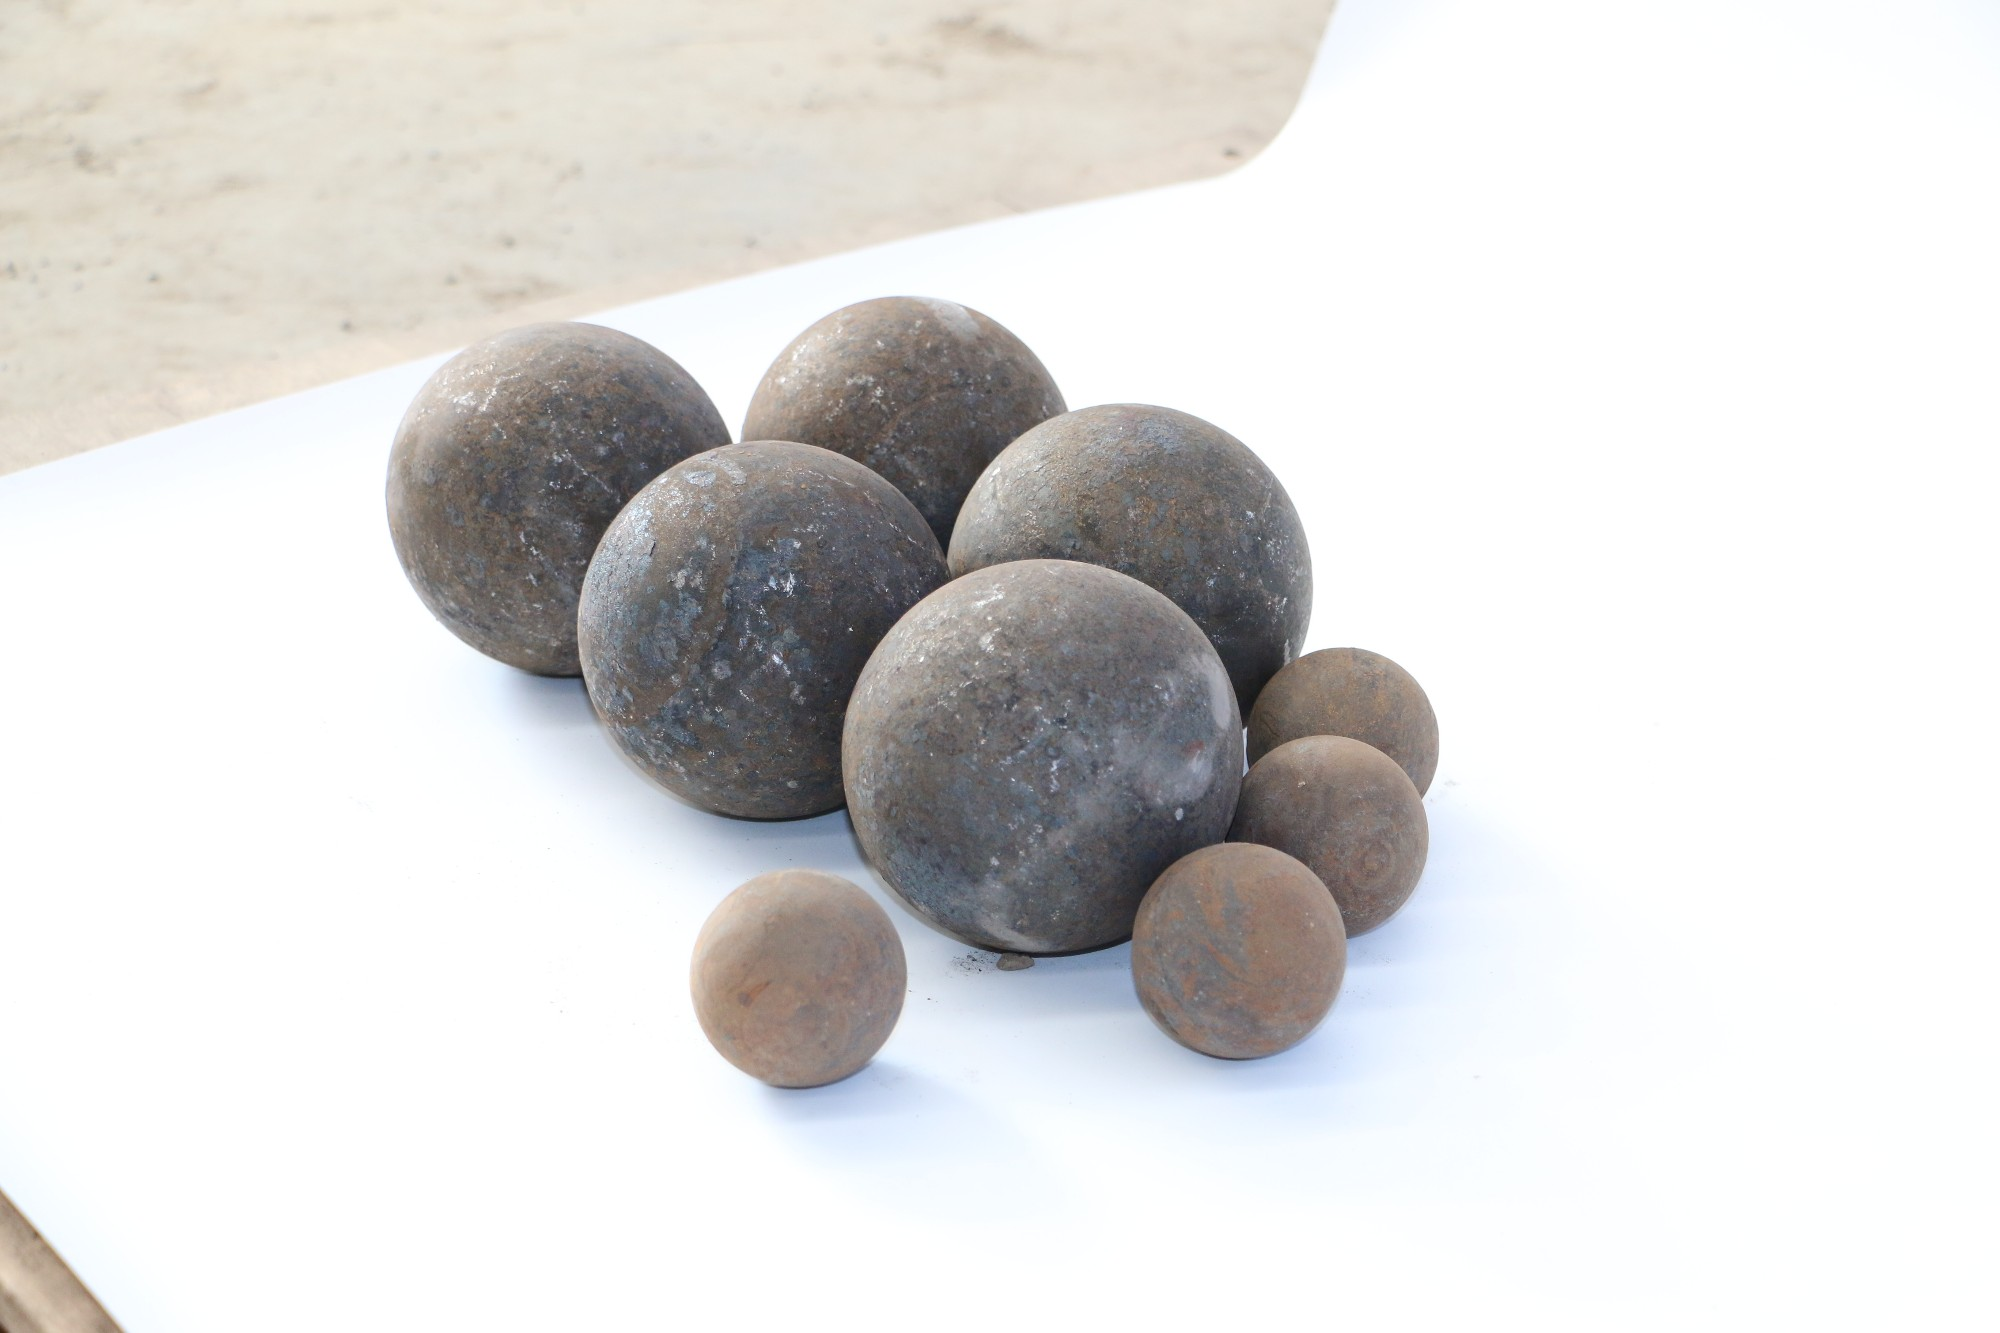 Hot Rolling Grinding Balls For Mining Manufacturers, Hot Rolling Grinding Balls For Mining Factory, Supply Hot Rolling Grinding Balls For Mining